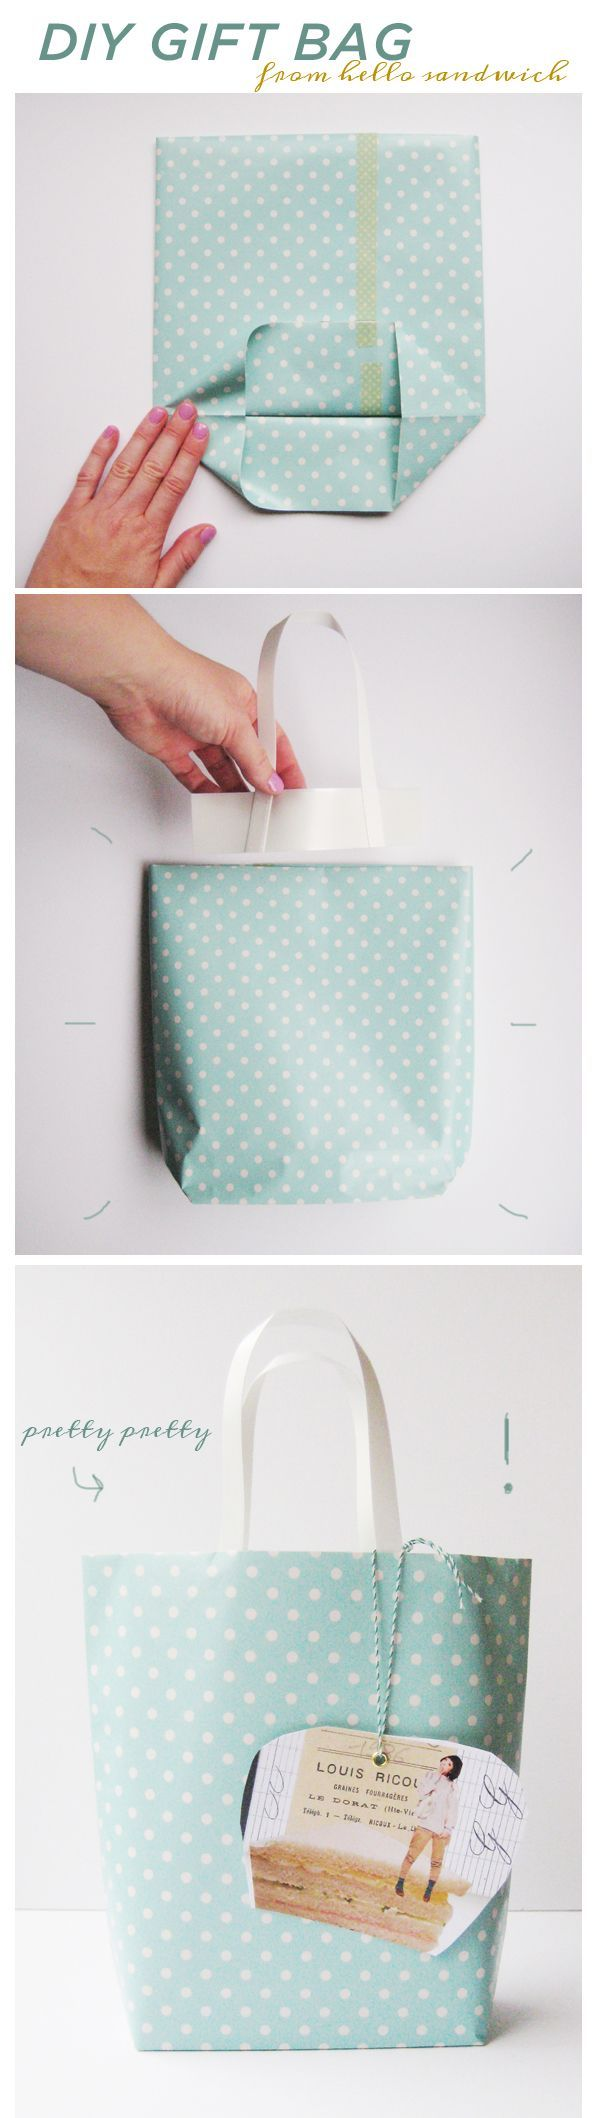 DIY gift bag – DIY real